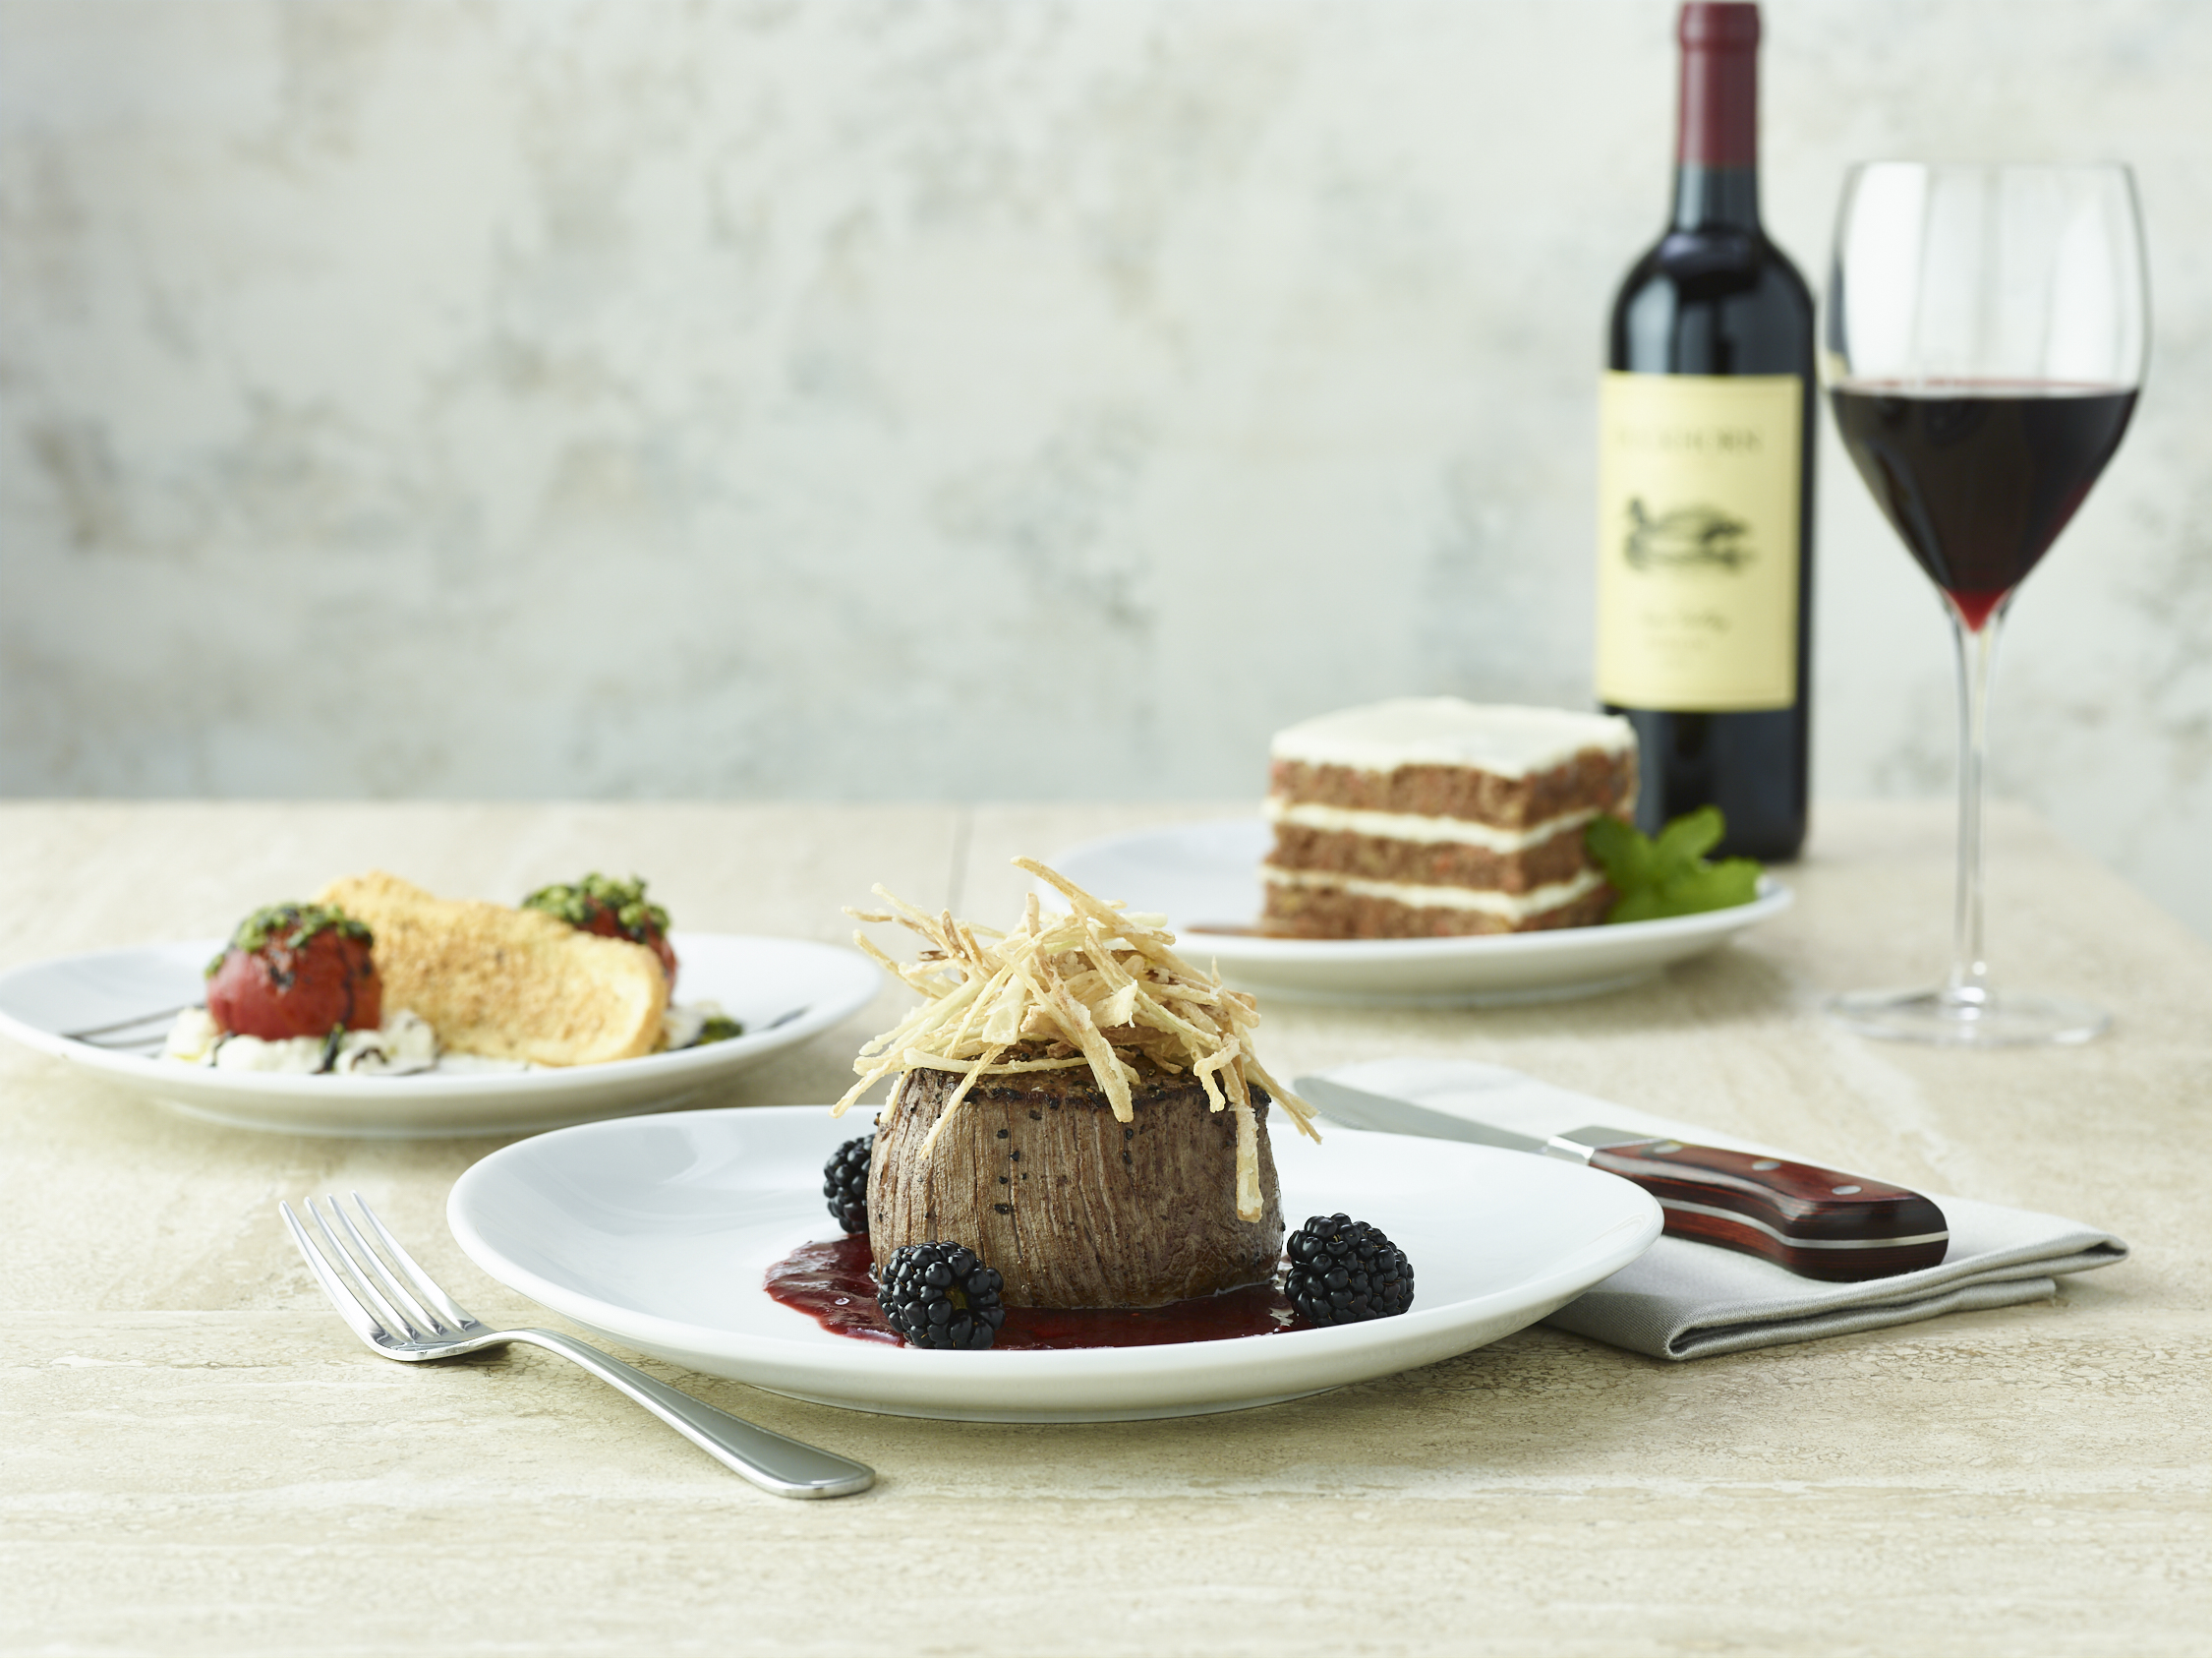 12oz filet mignon w blackberry glaze 1.jpg